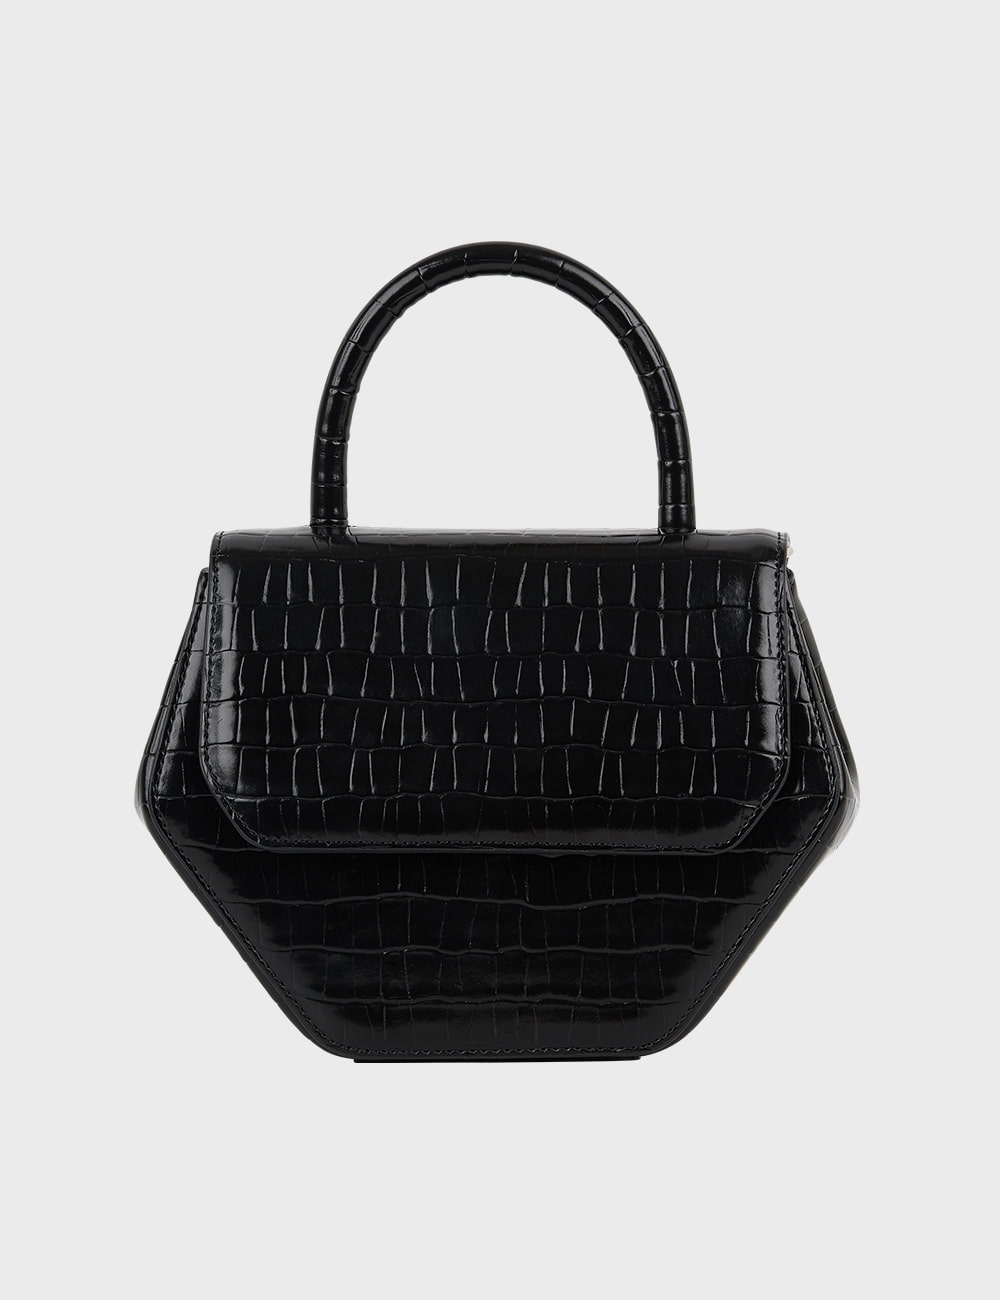 MAISON246,246 MAGOT CROCODILE MEDIUM BAG - BLACK,No.246